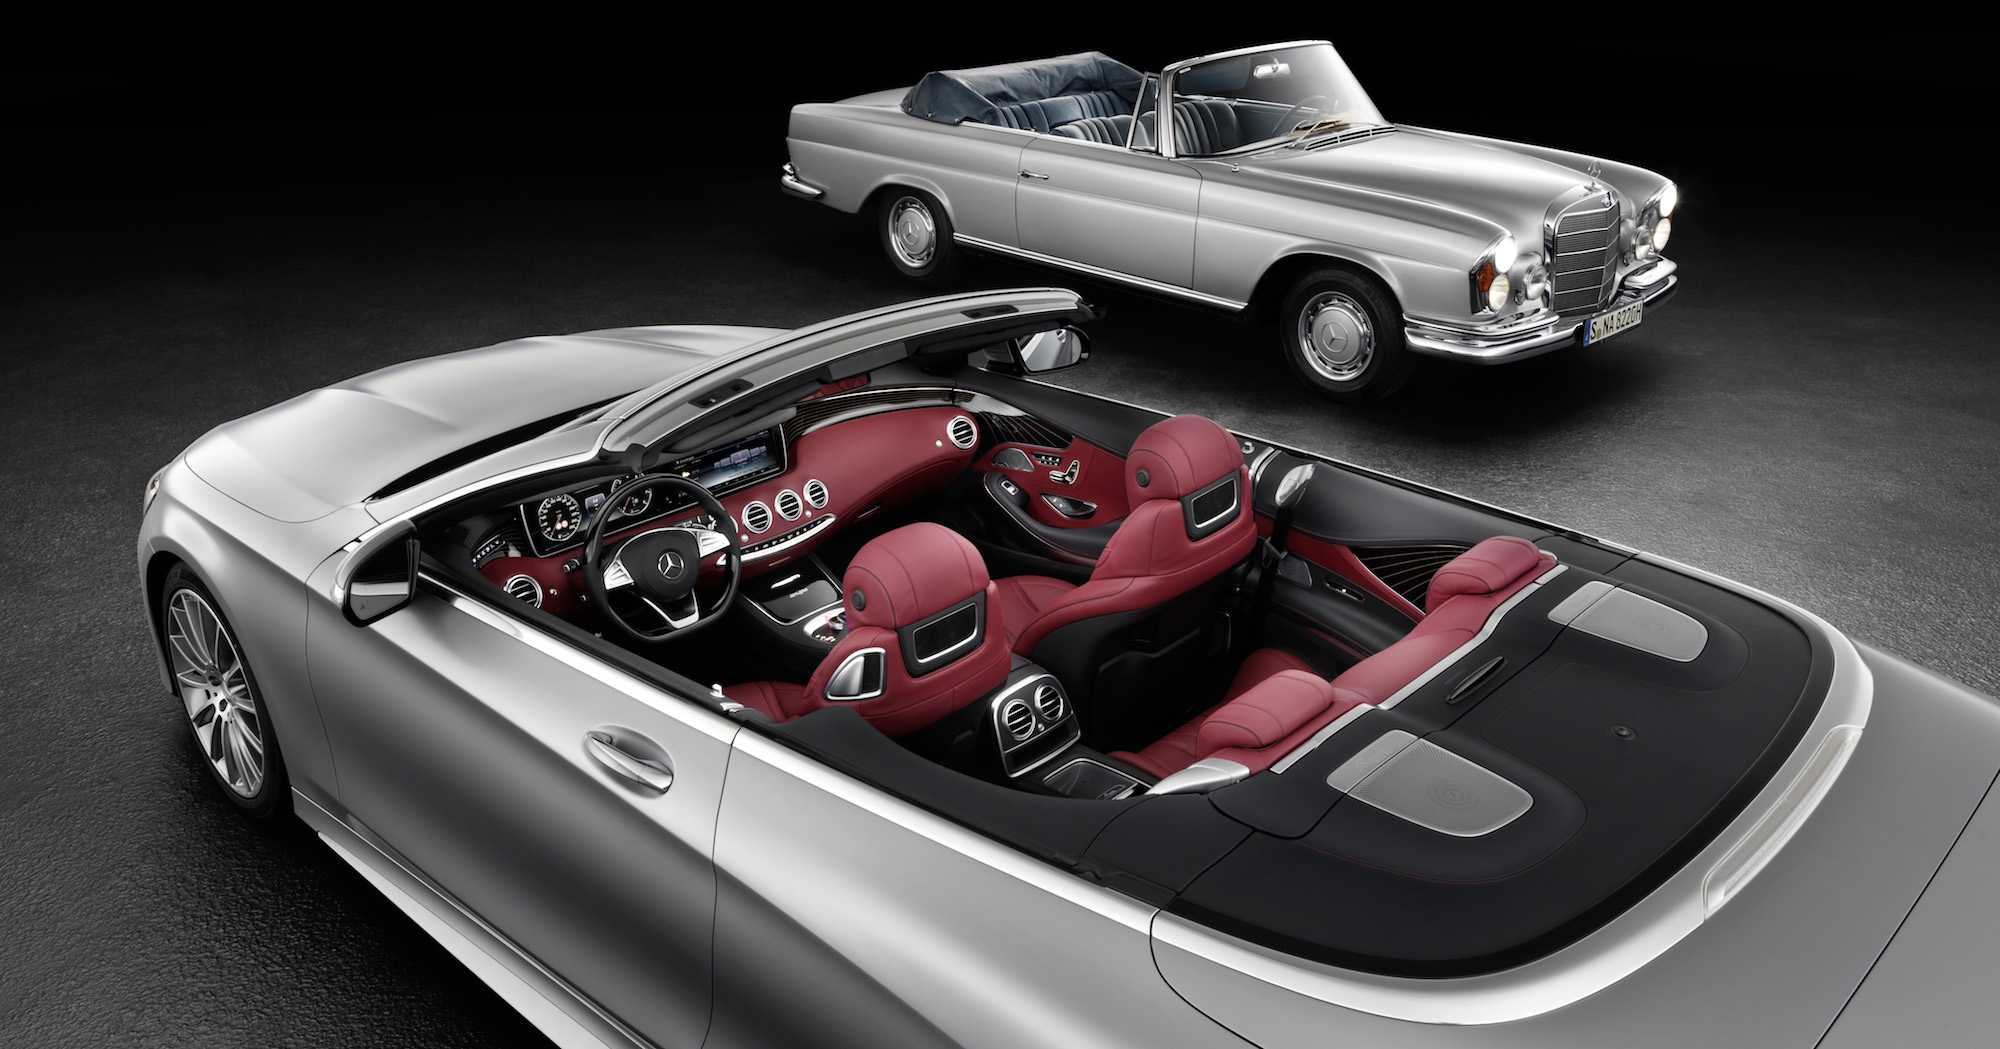 2016 Mercedes-Benz S-Class Cabriolet – First Pictures Reveal Lavish Interior